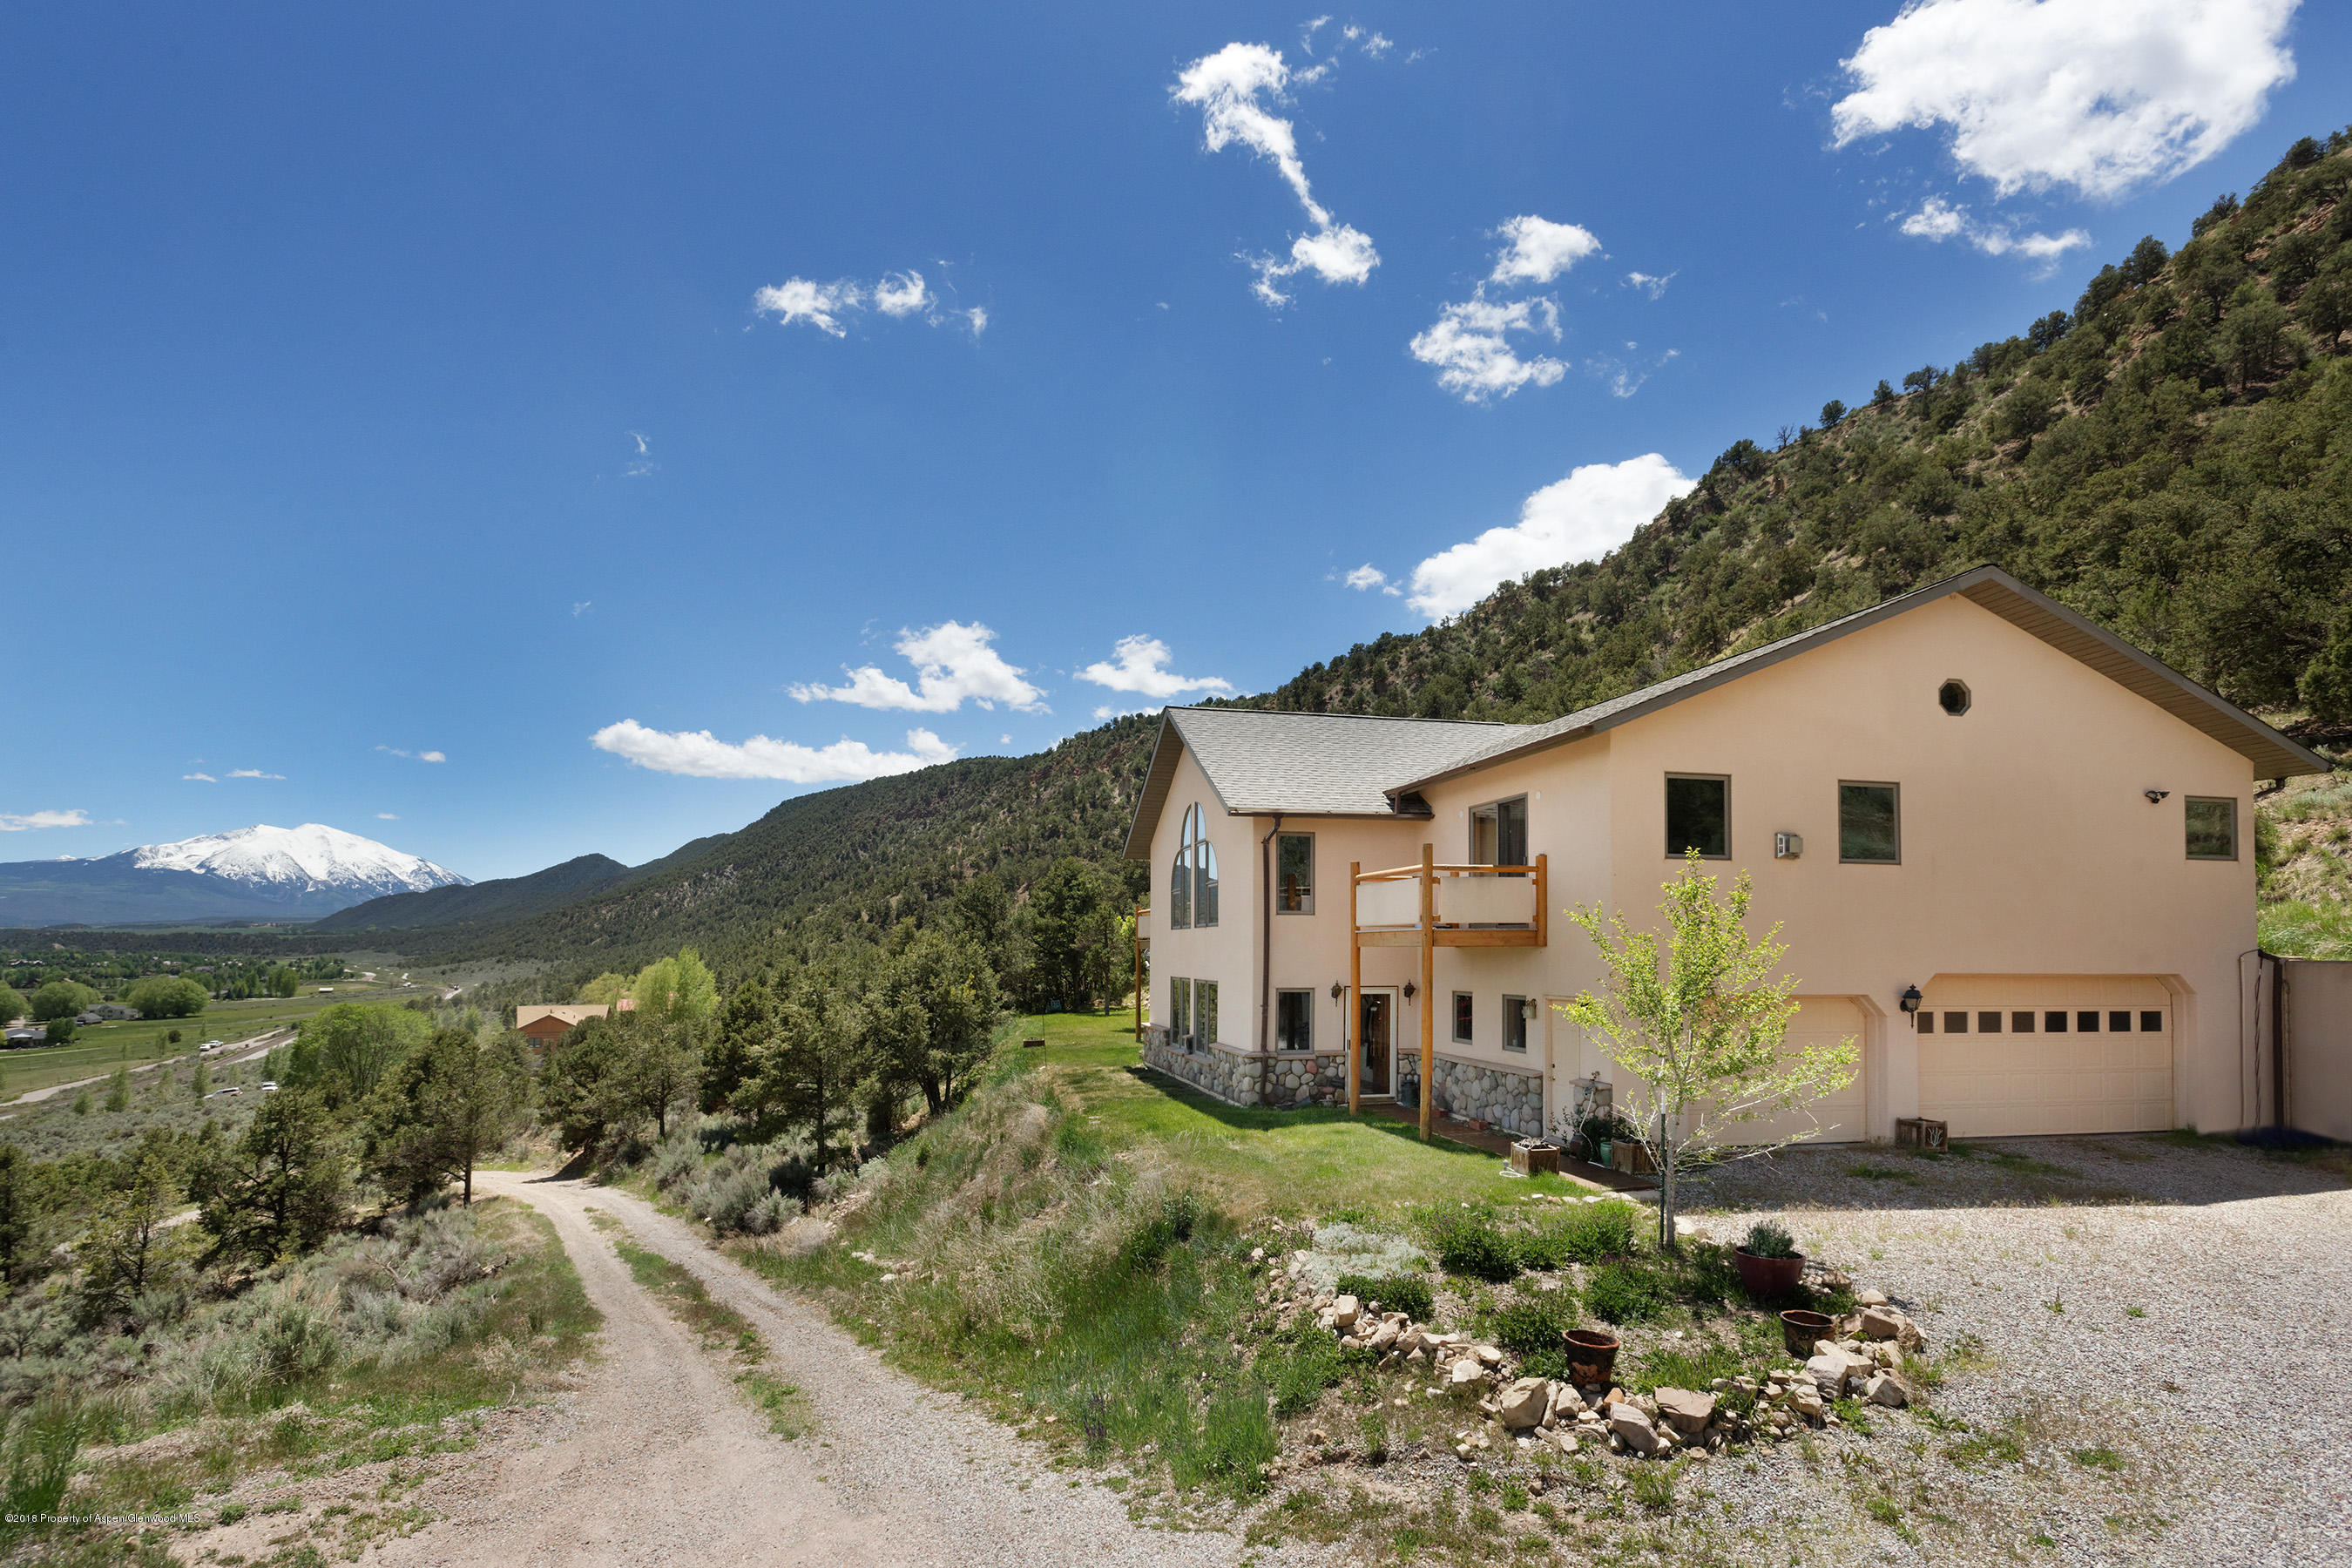 1853 County Road 109 Glenwood Springs Photo 1